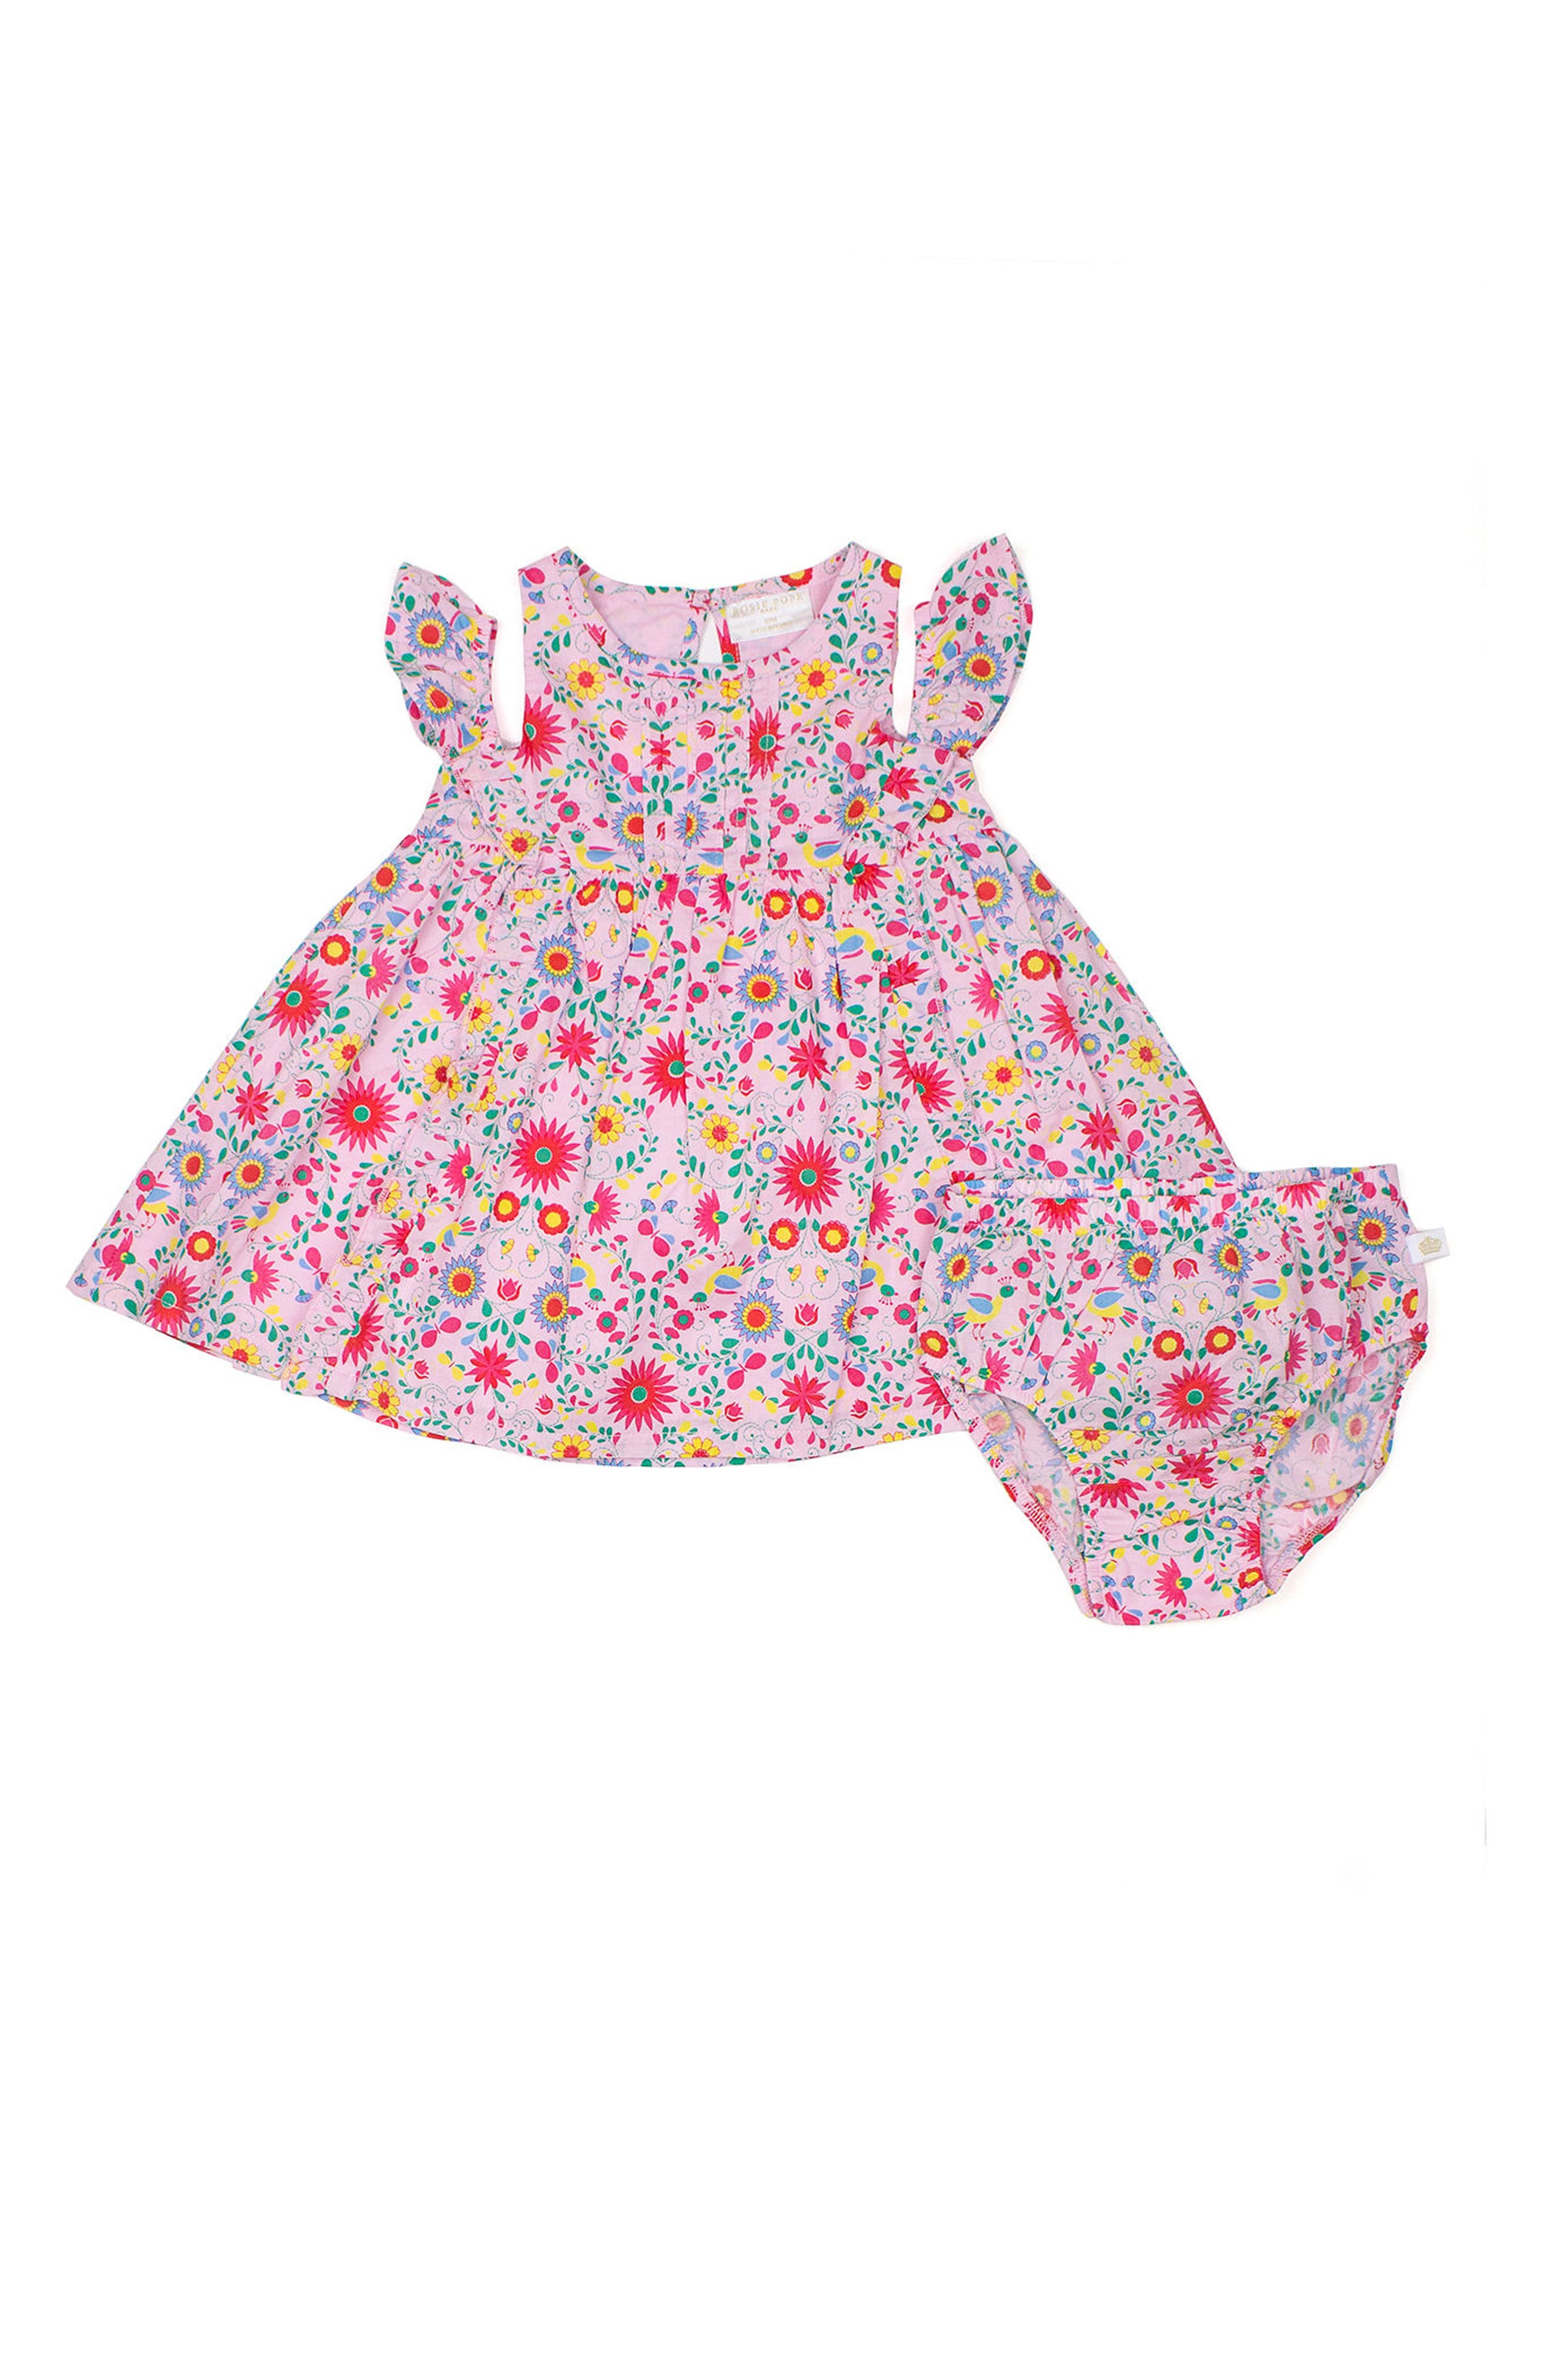 Rosie Pope Floral Off the Shoulder Dress (Baby Girls)